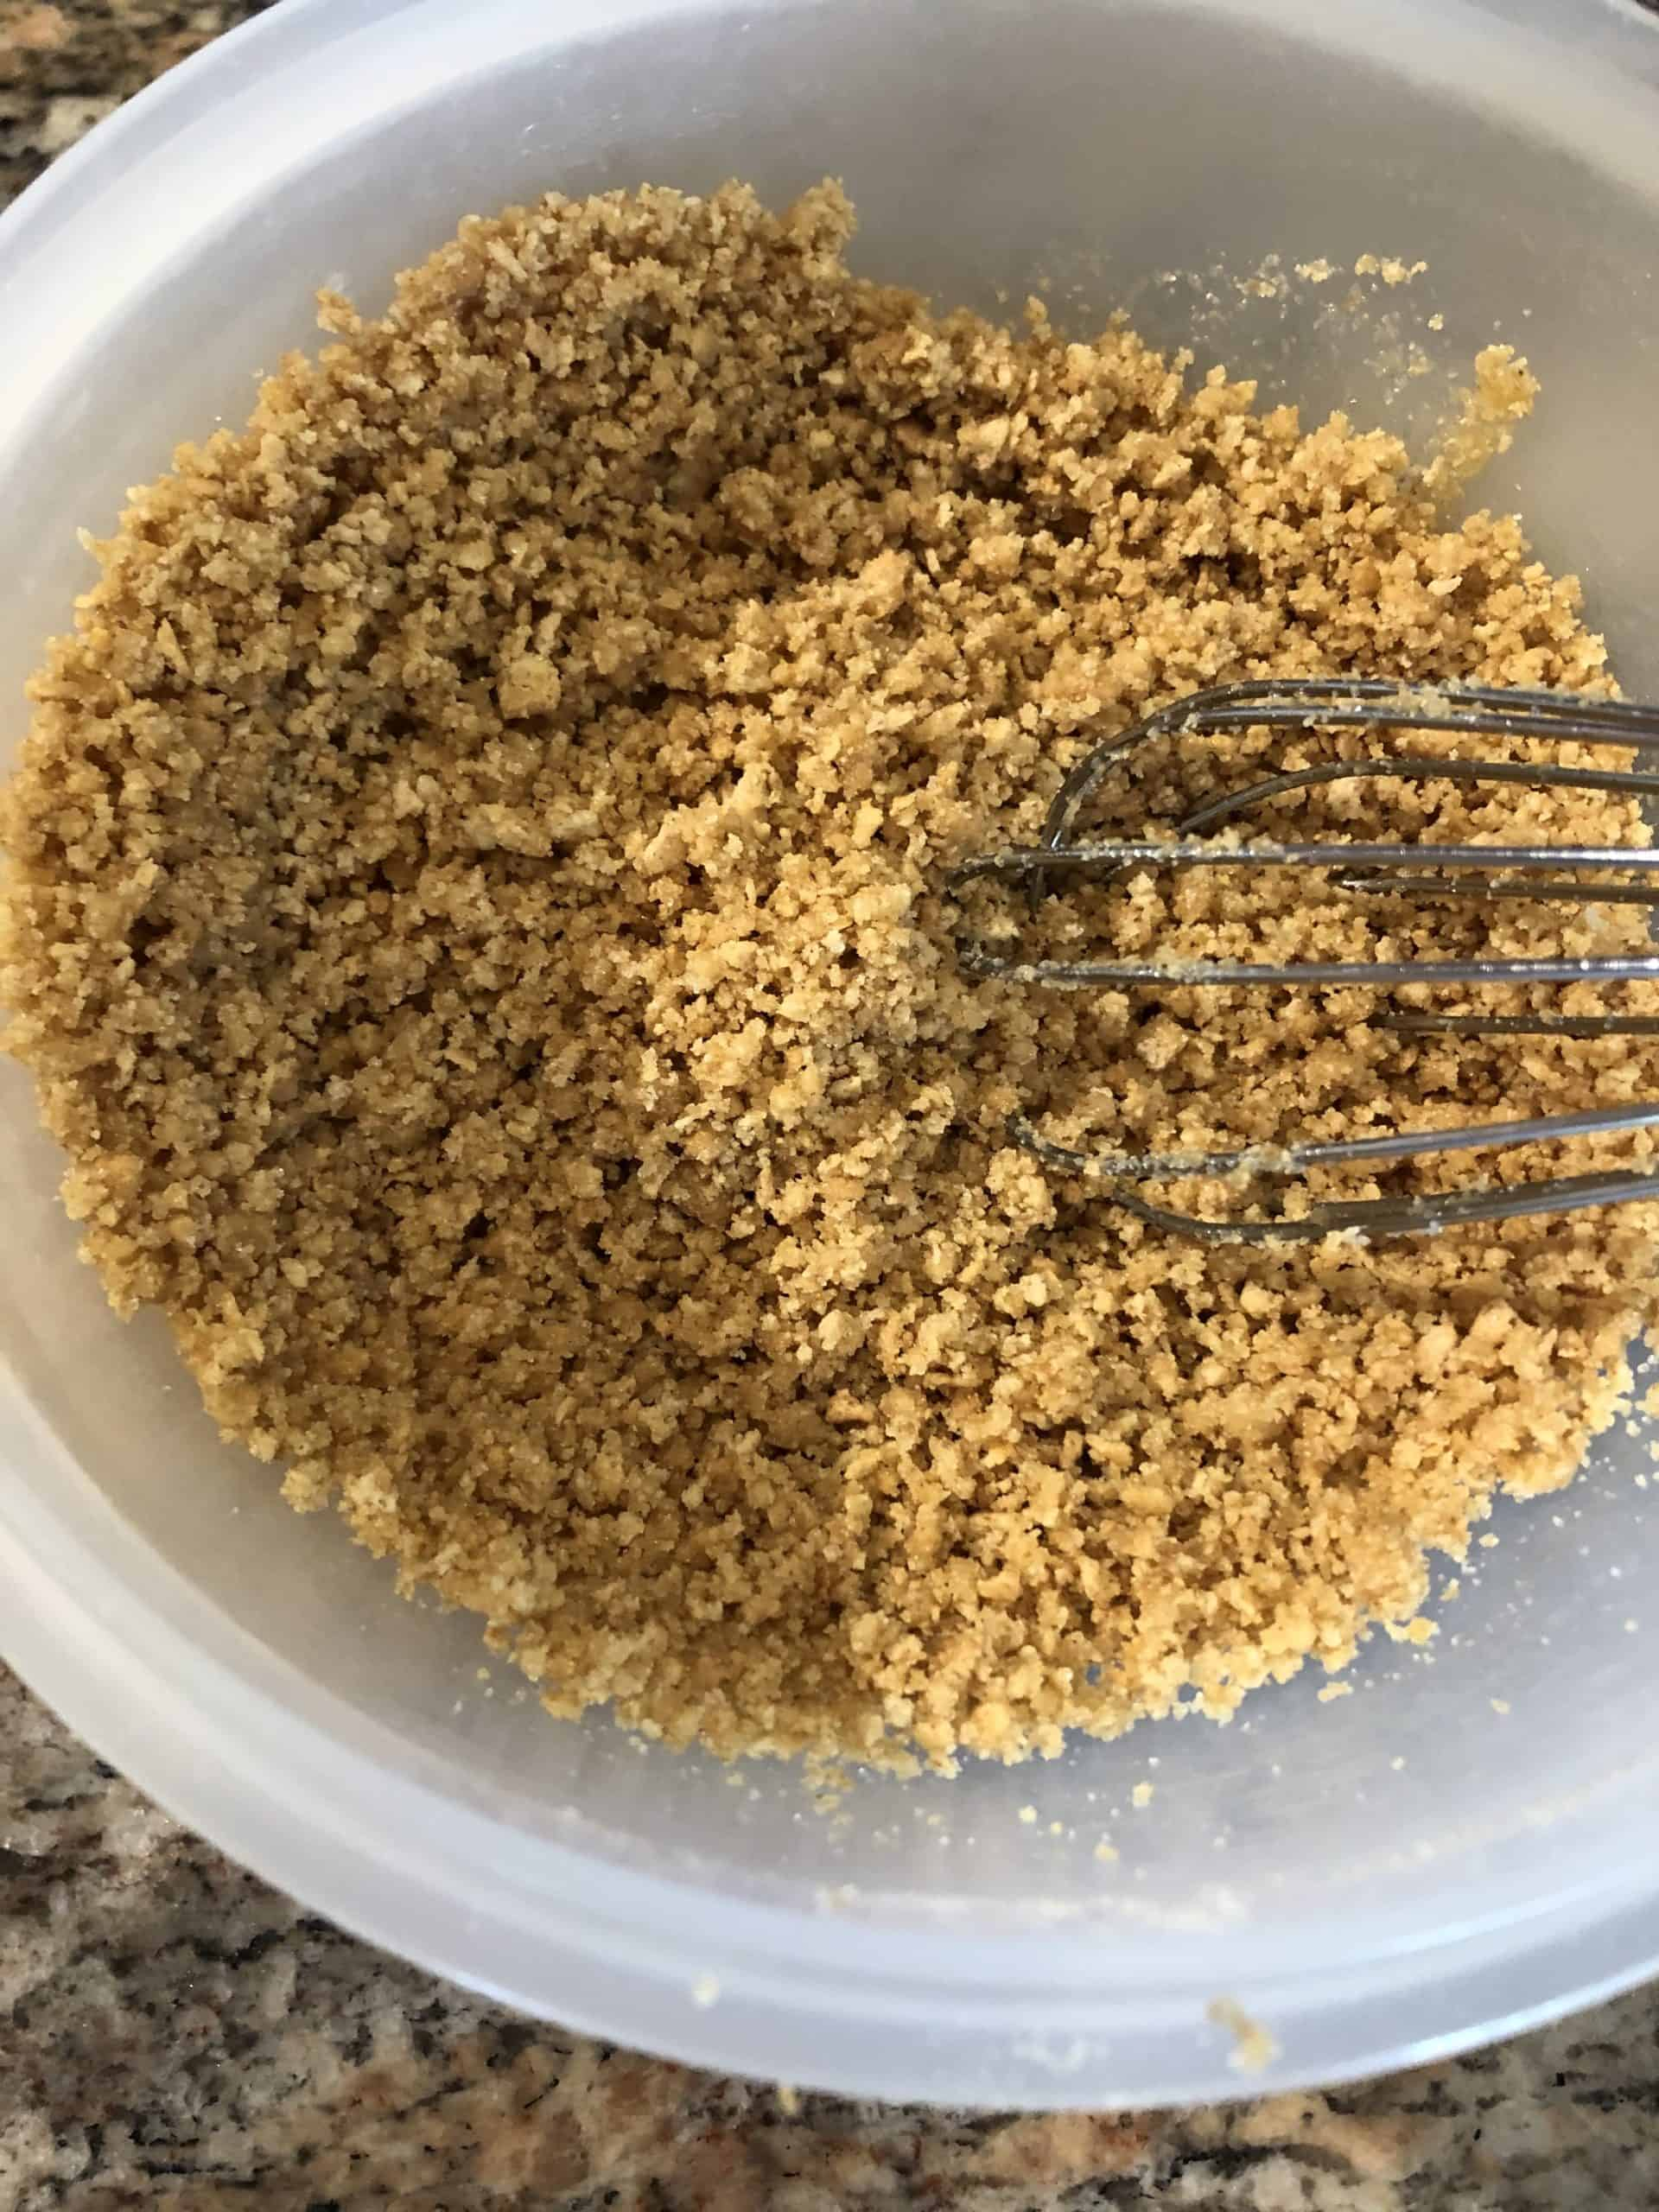 Crushed Graham Crackers in mixing bowl with whip.